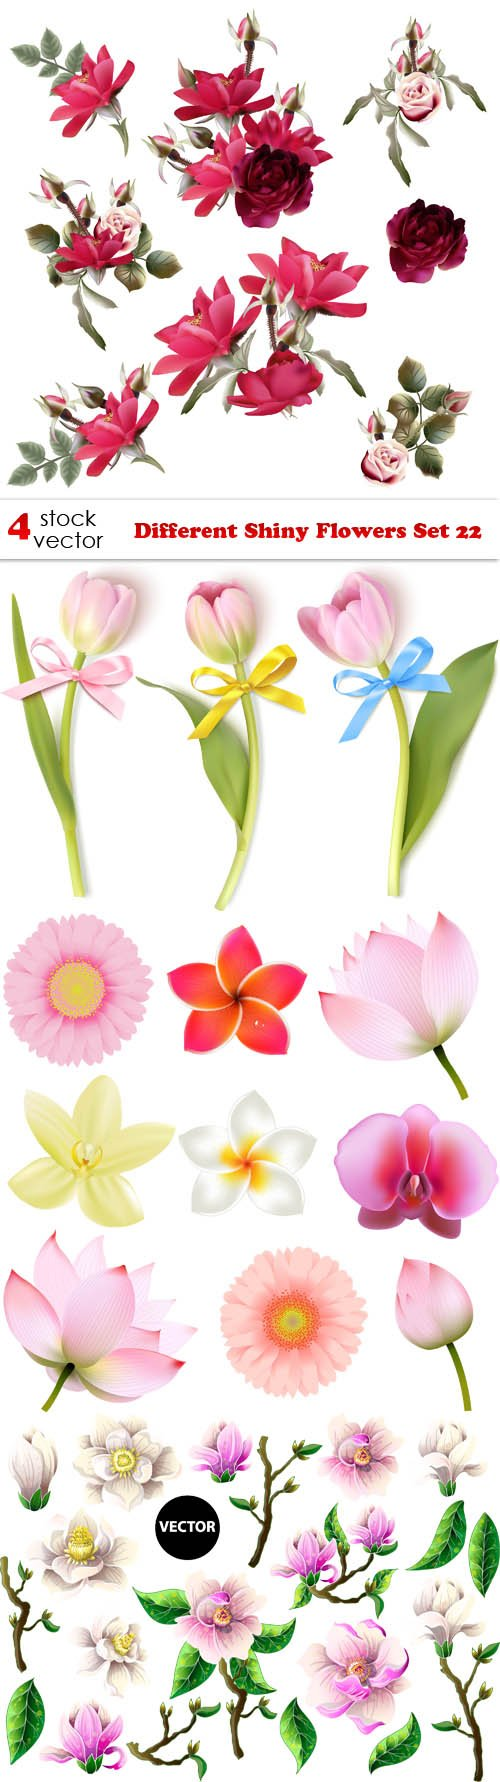 Vectors - Different Shiny Flowers Set 22